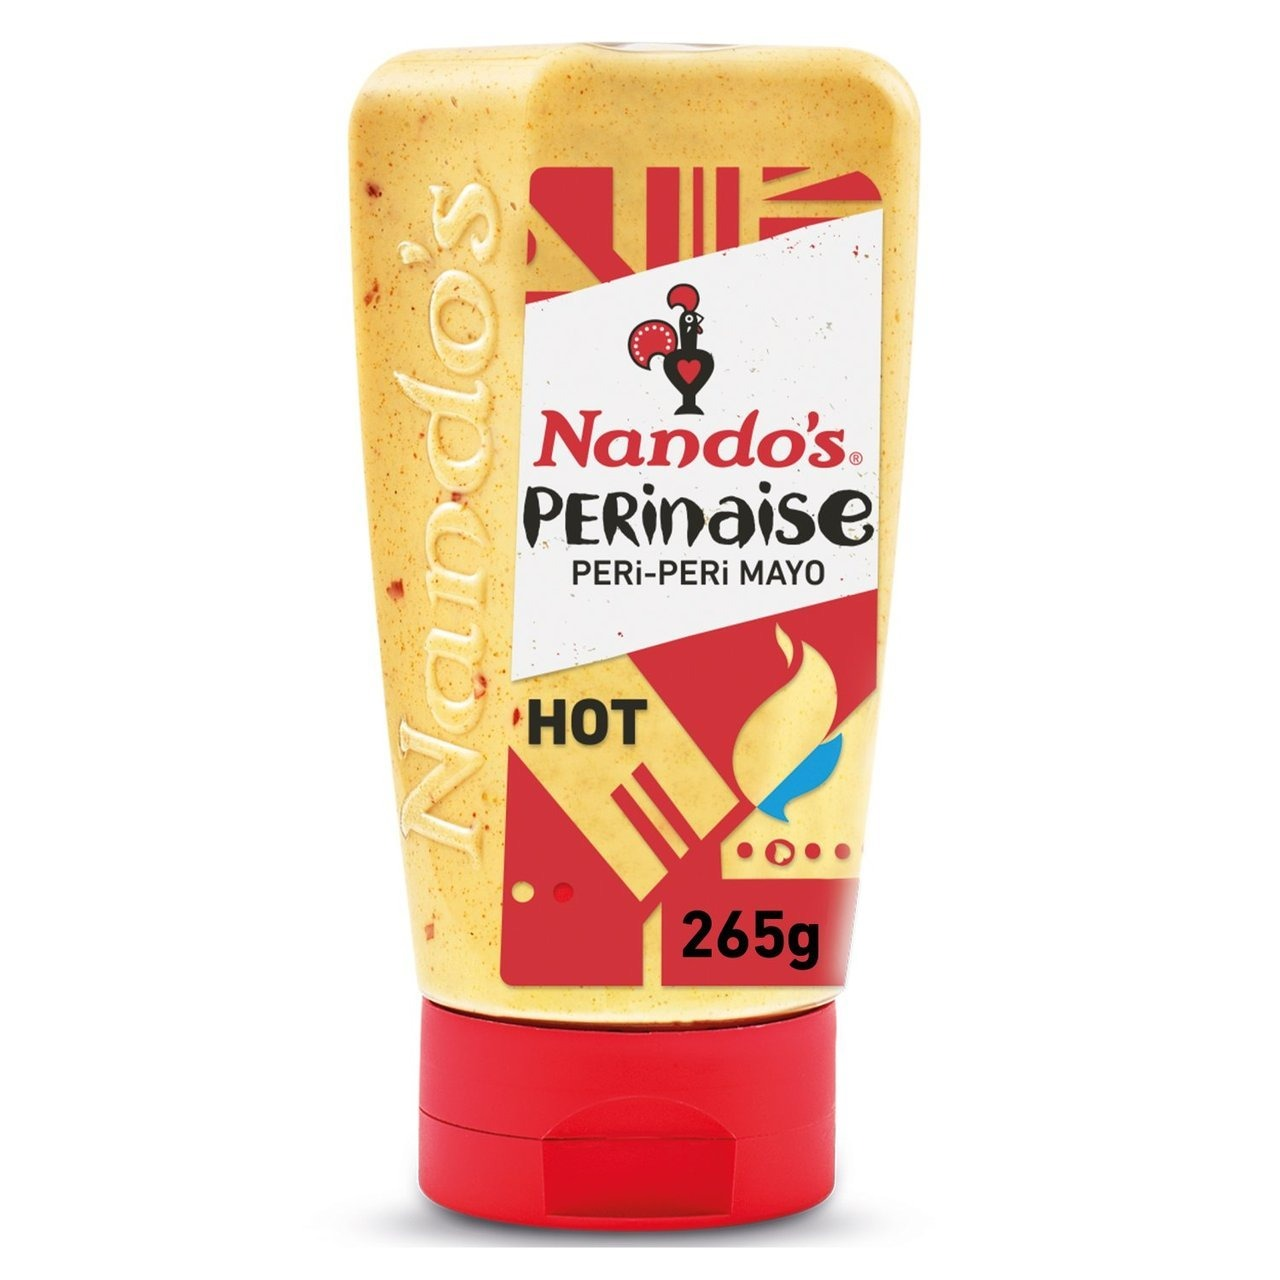 Hot price for this Nando's sauce